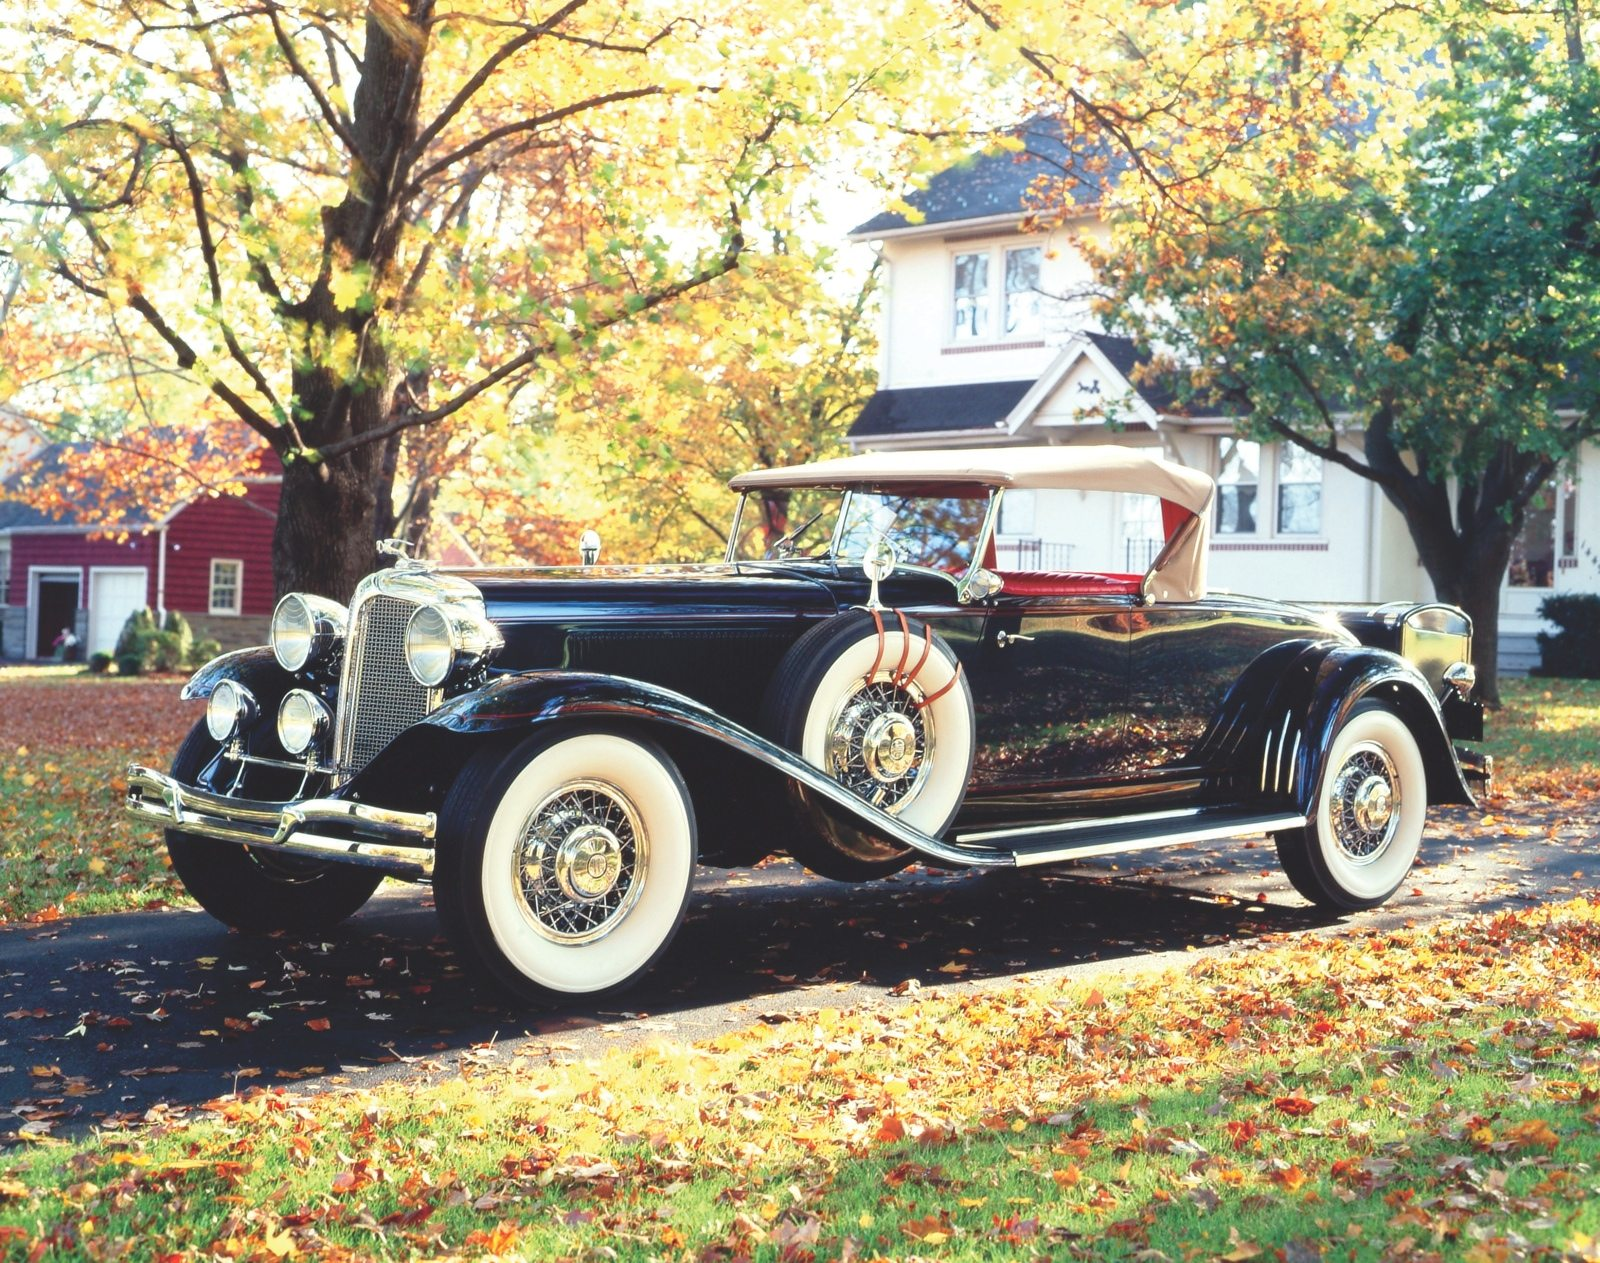 1931 Chrysler CG Imperial 8 Roadster